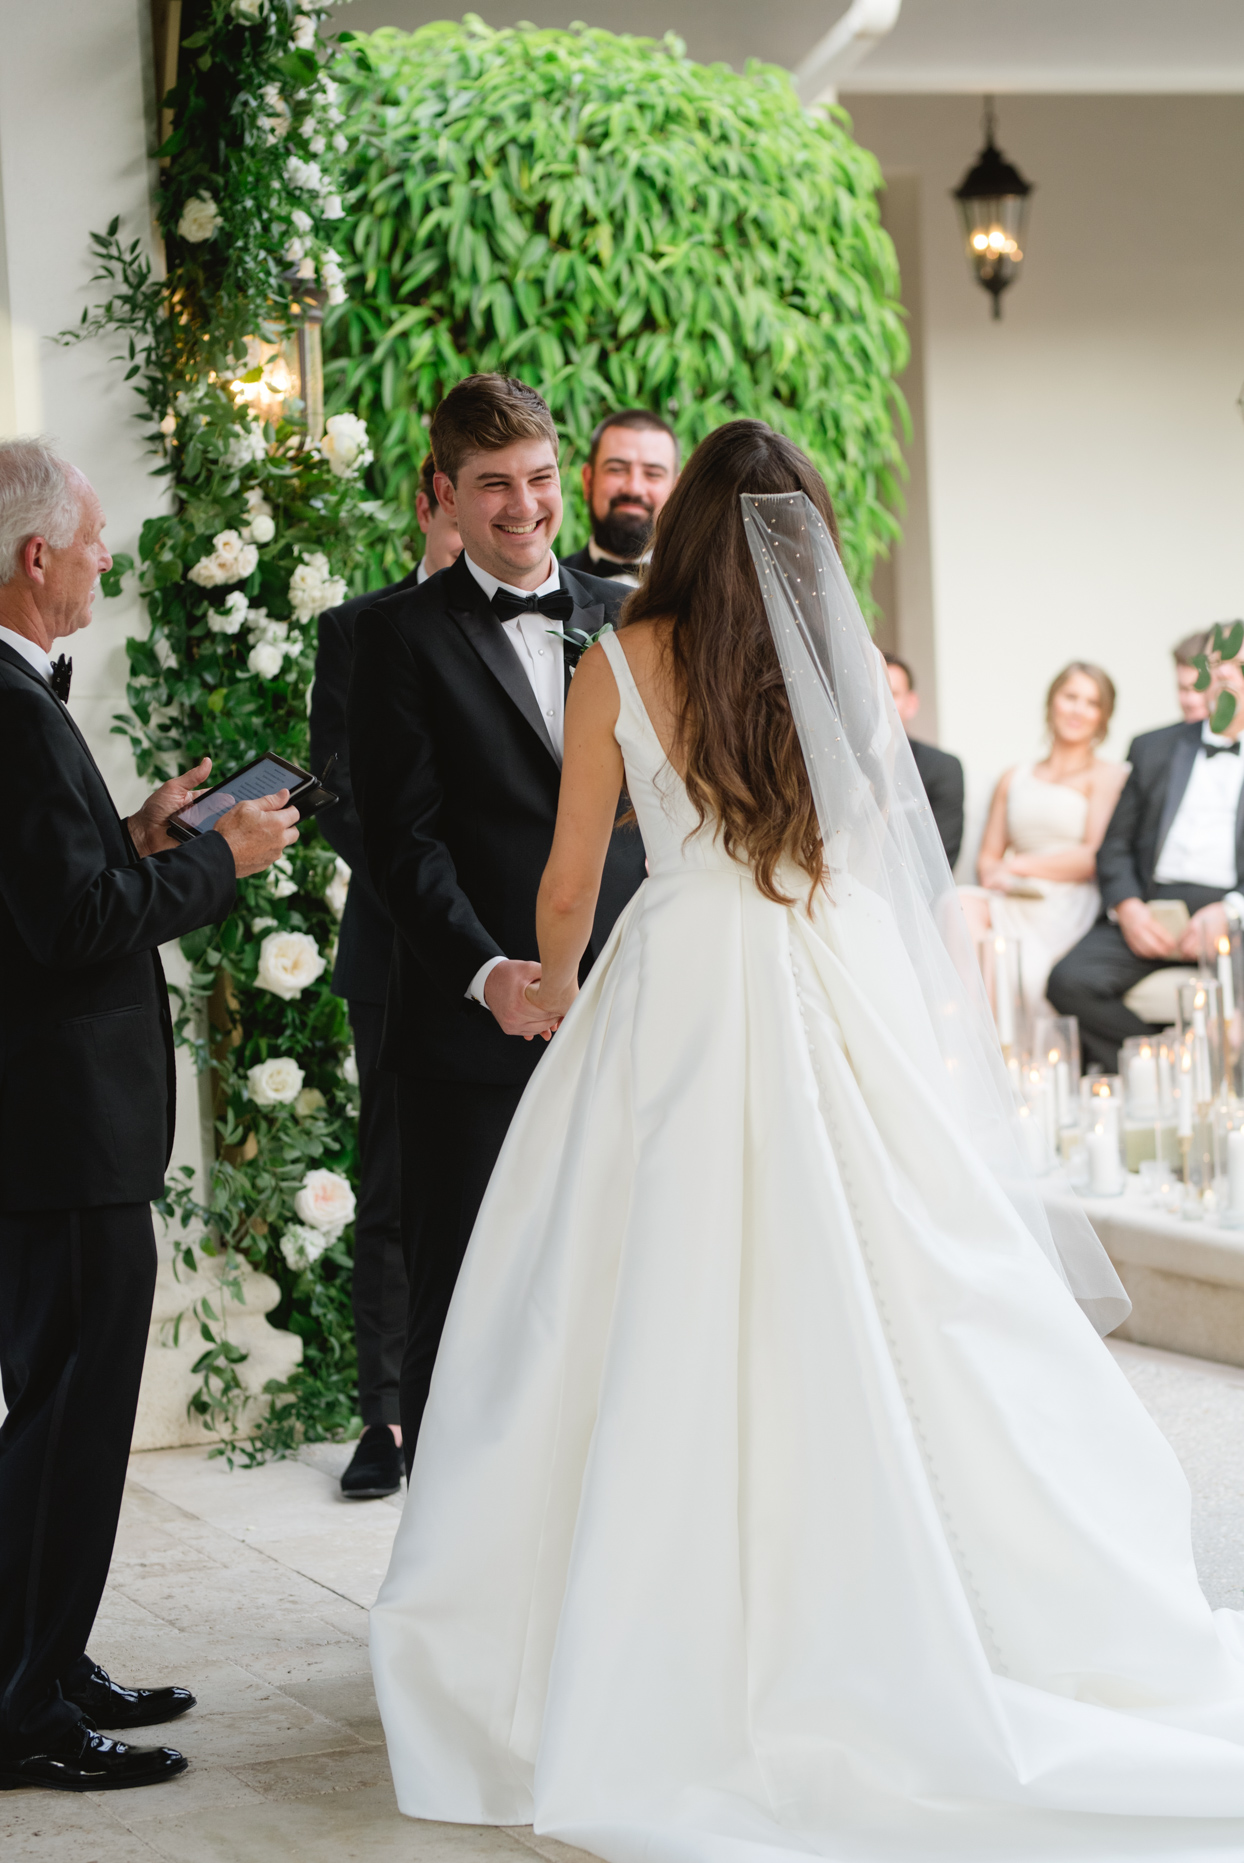 couple smiling and holding hands for outdoor wedding ceremony